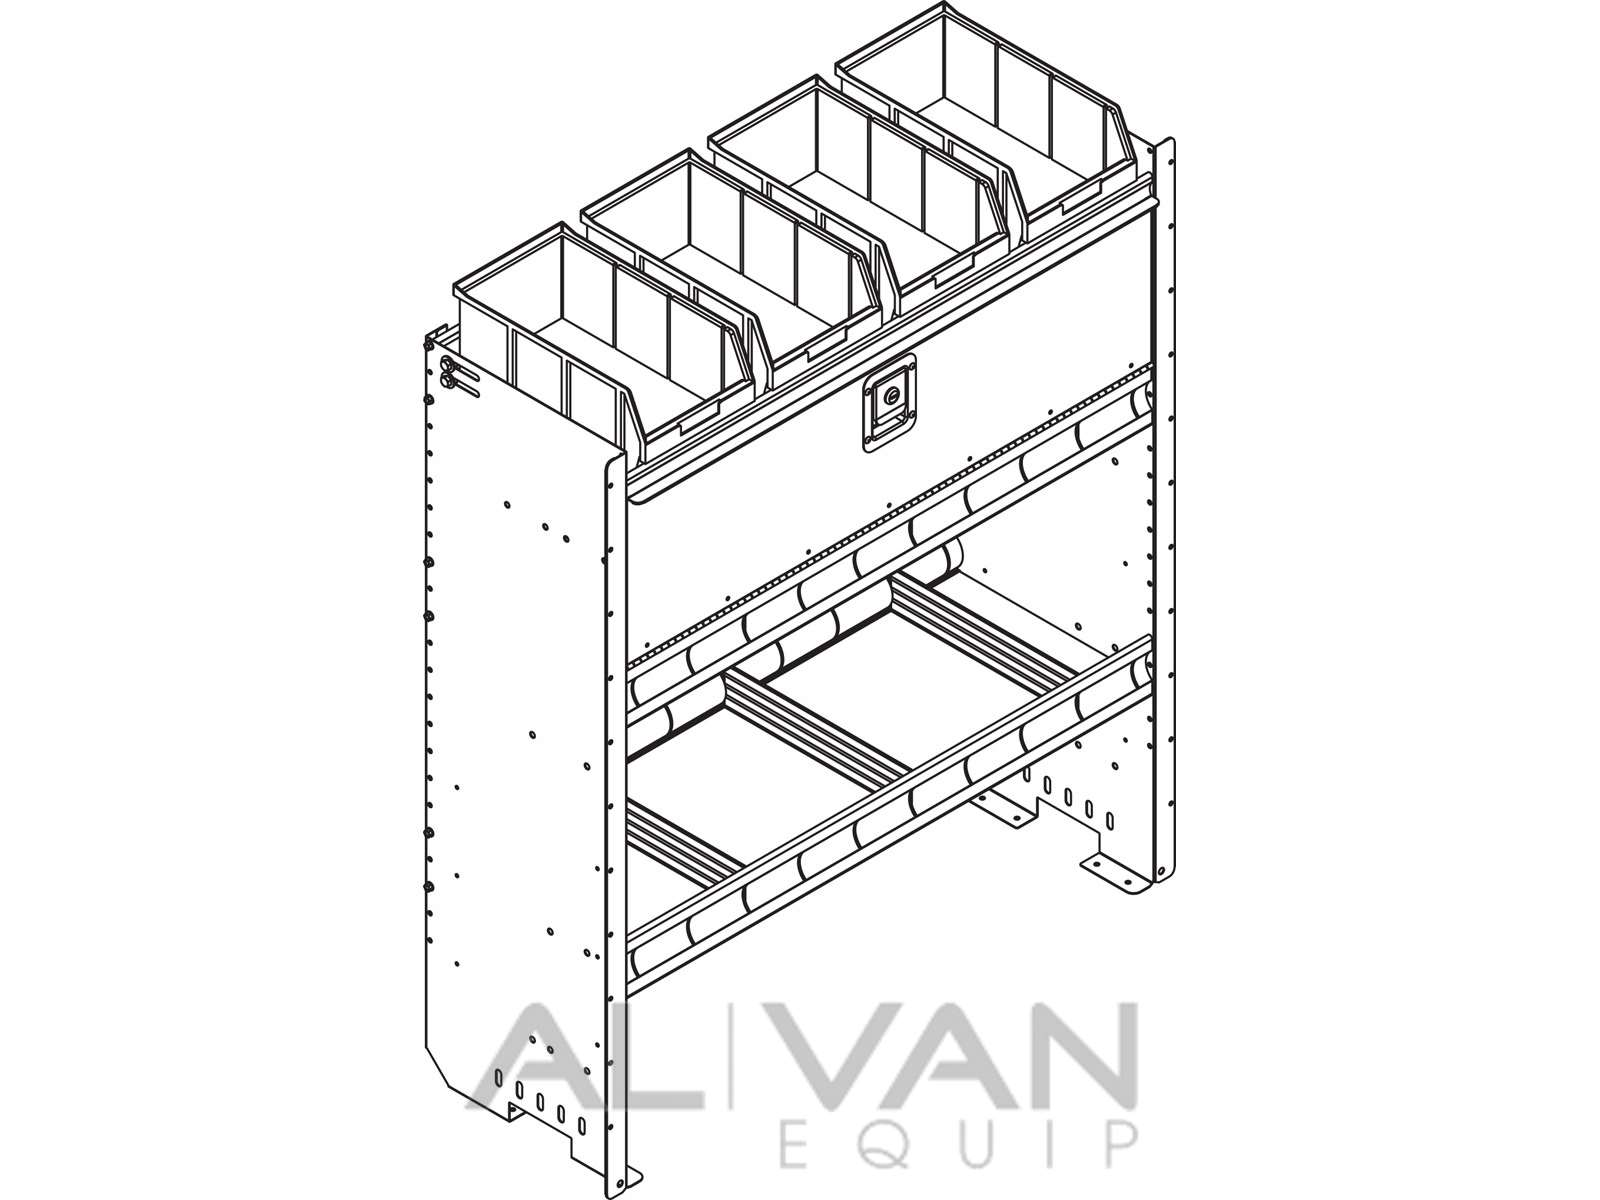 1600x1200 Square Back Van Storage Bins H38 R Line Drawing Al Van Equip